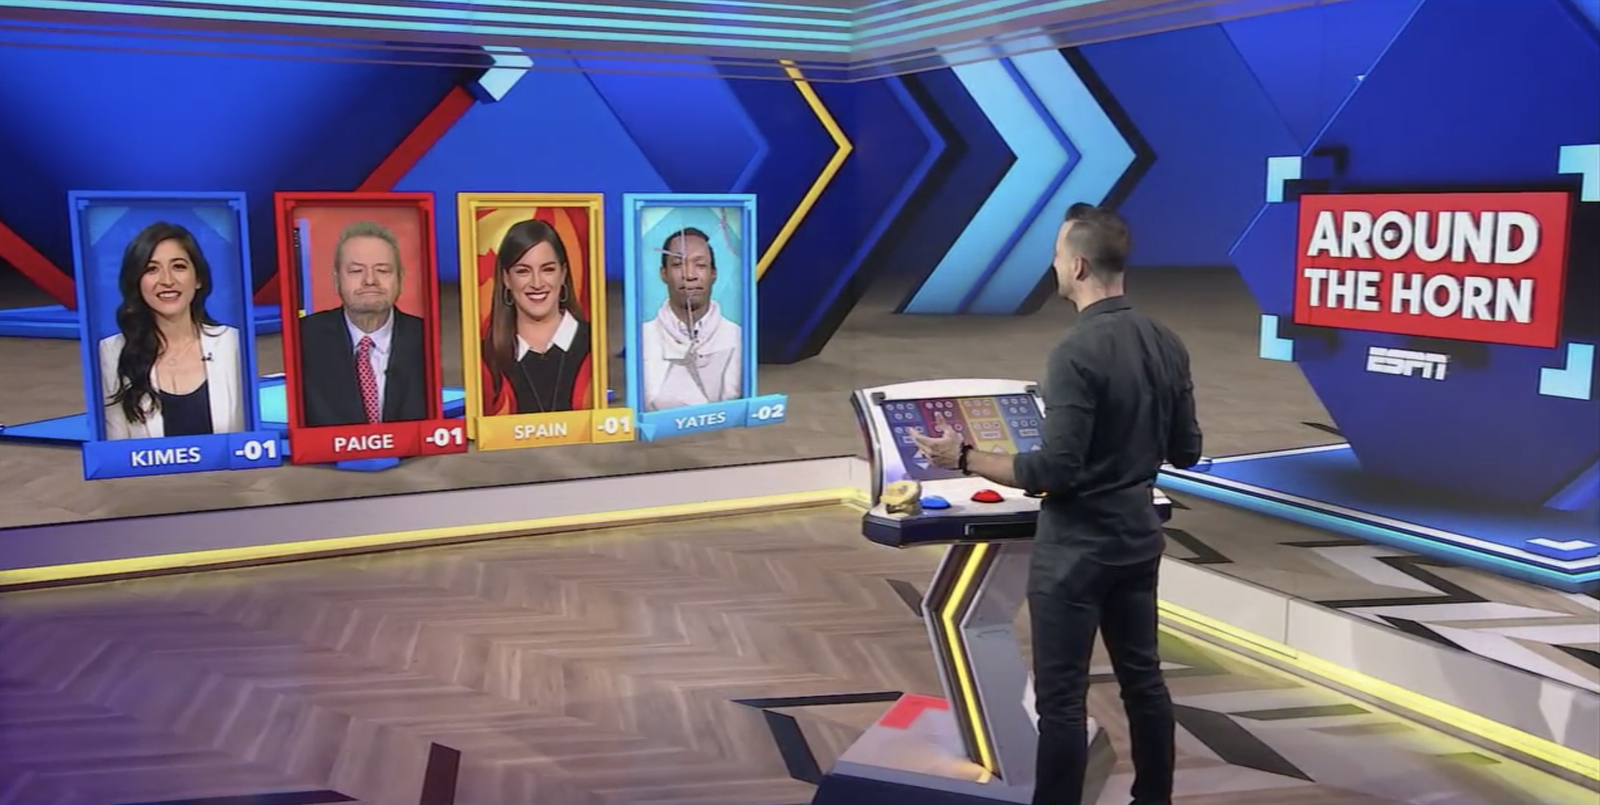 NCS_ESPN-Around-the-Horn-Graphics-Augmented-Reality_028